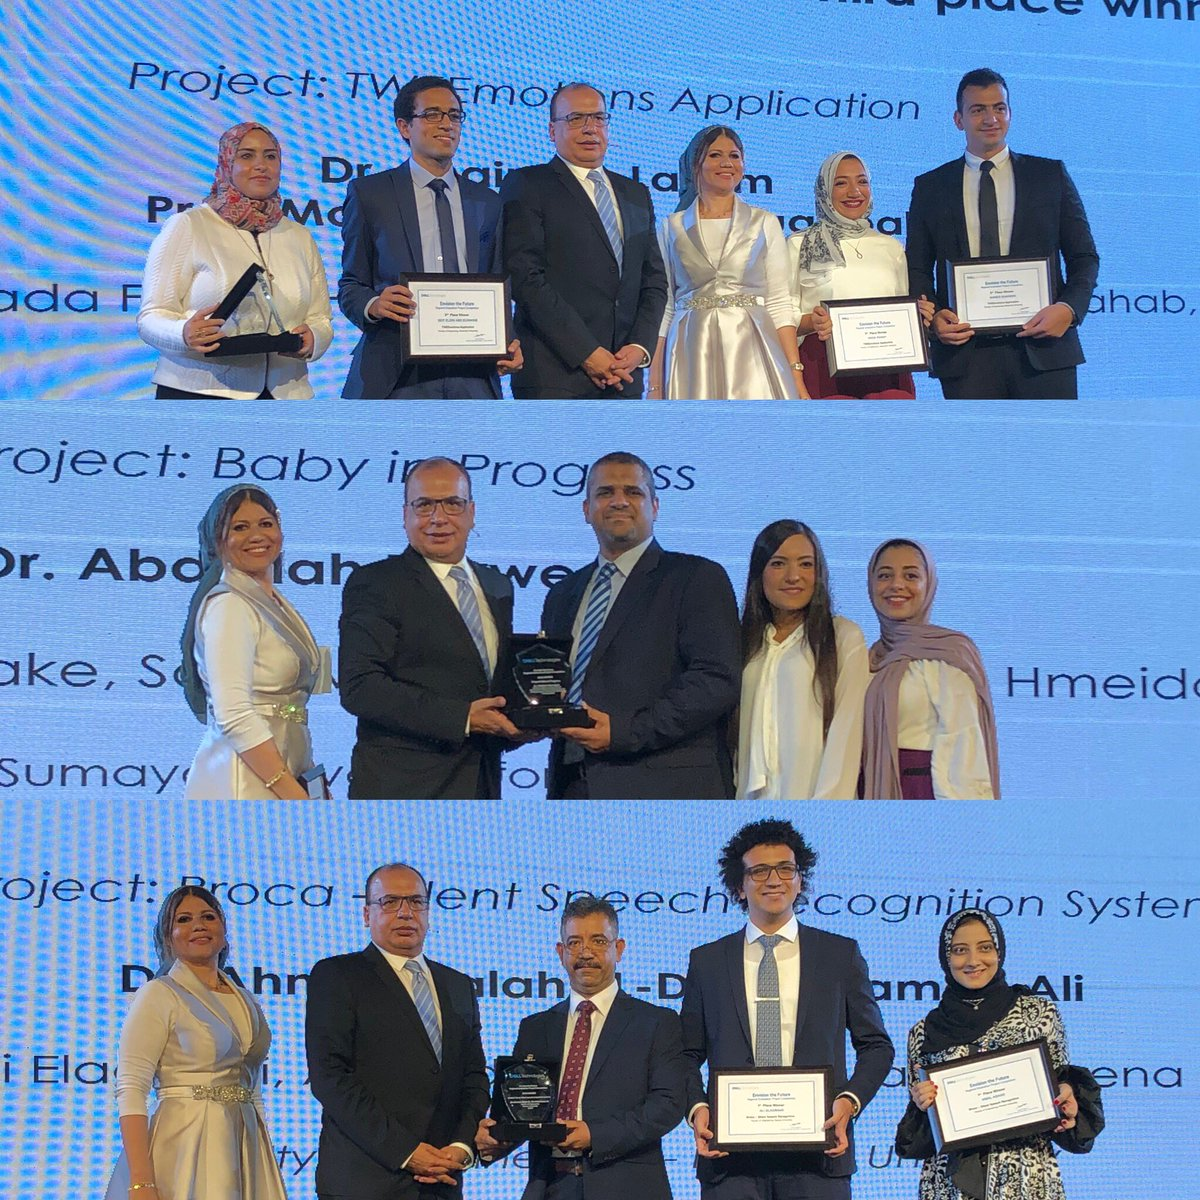 Congratulations to all of our #EnvisionTheFuture award winners. #DellTechGitex